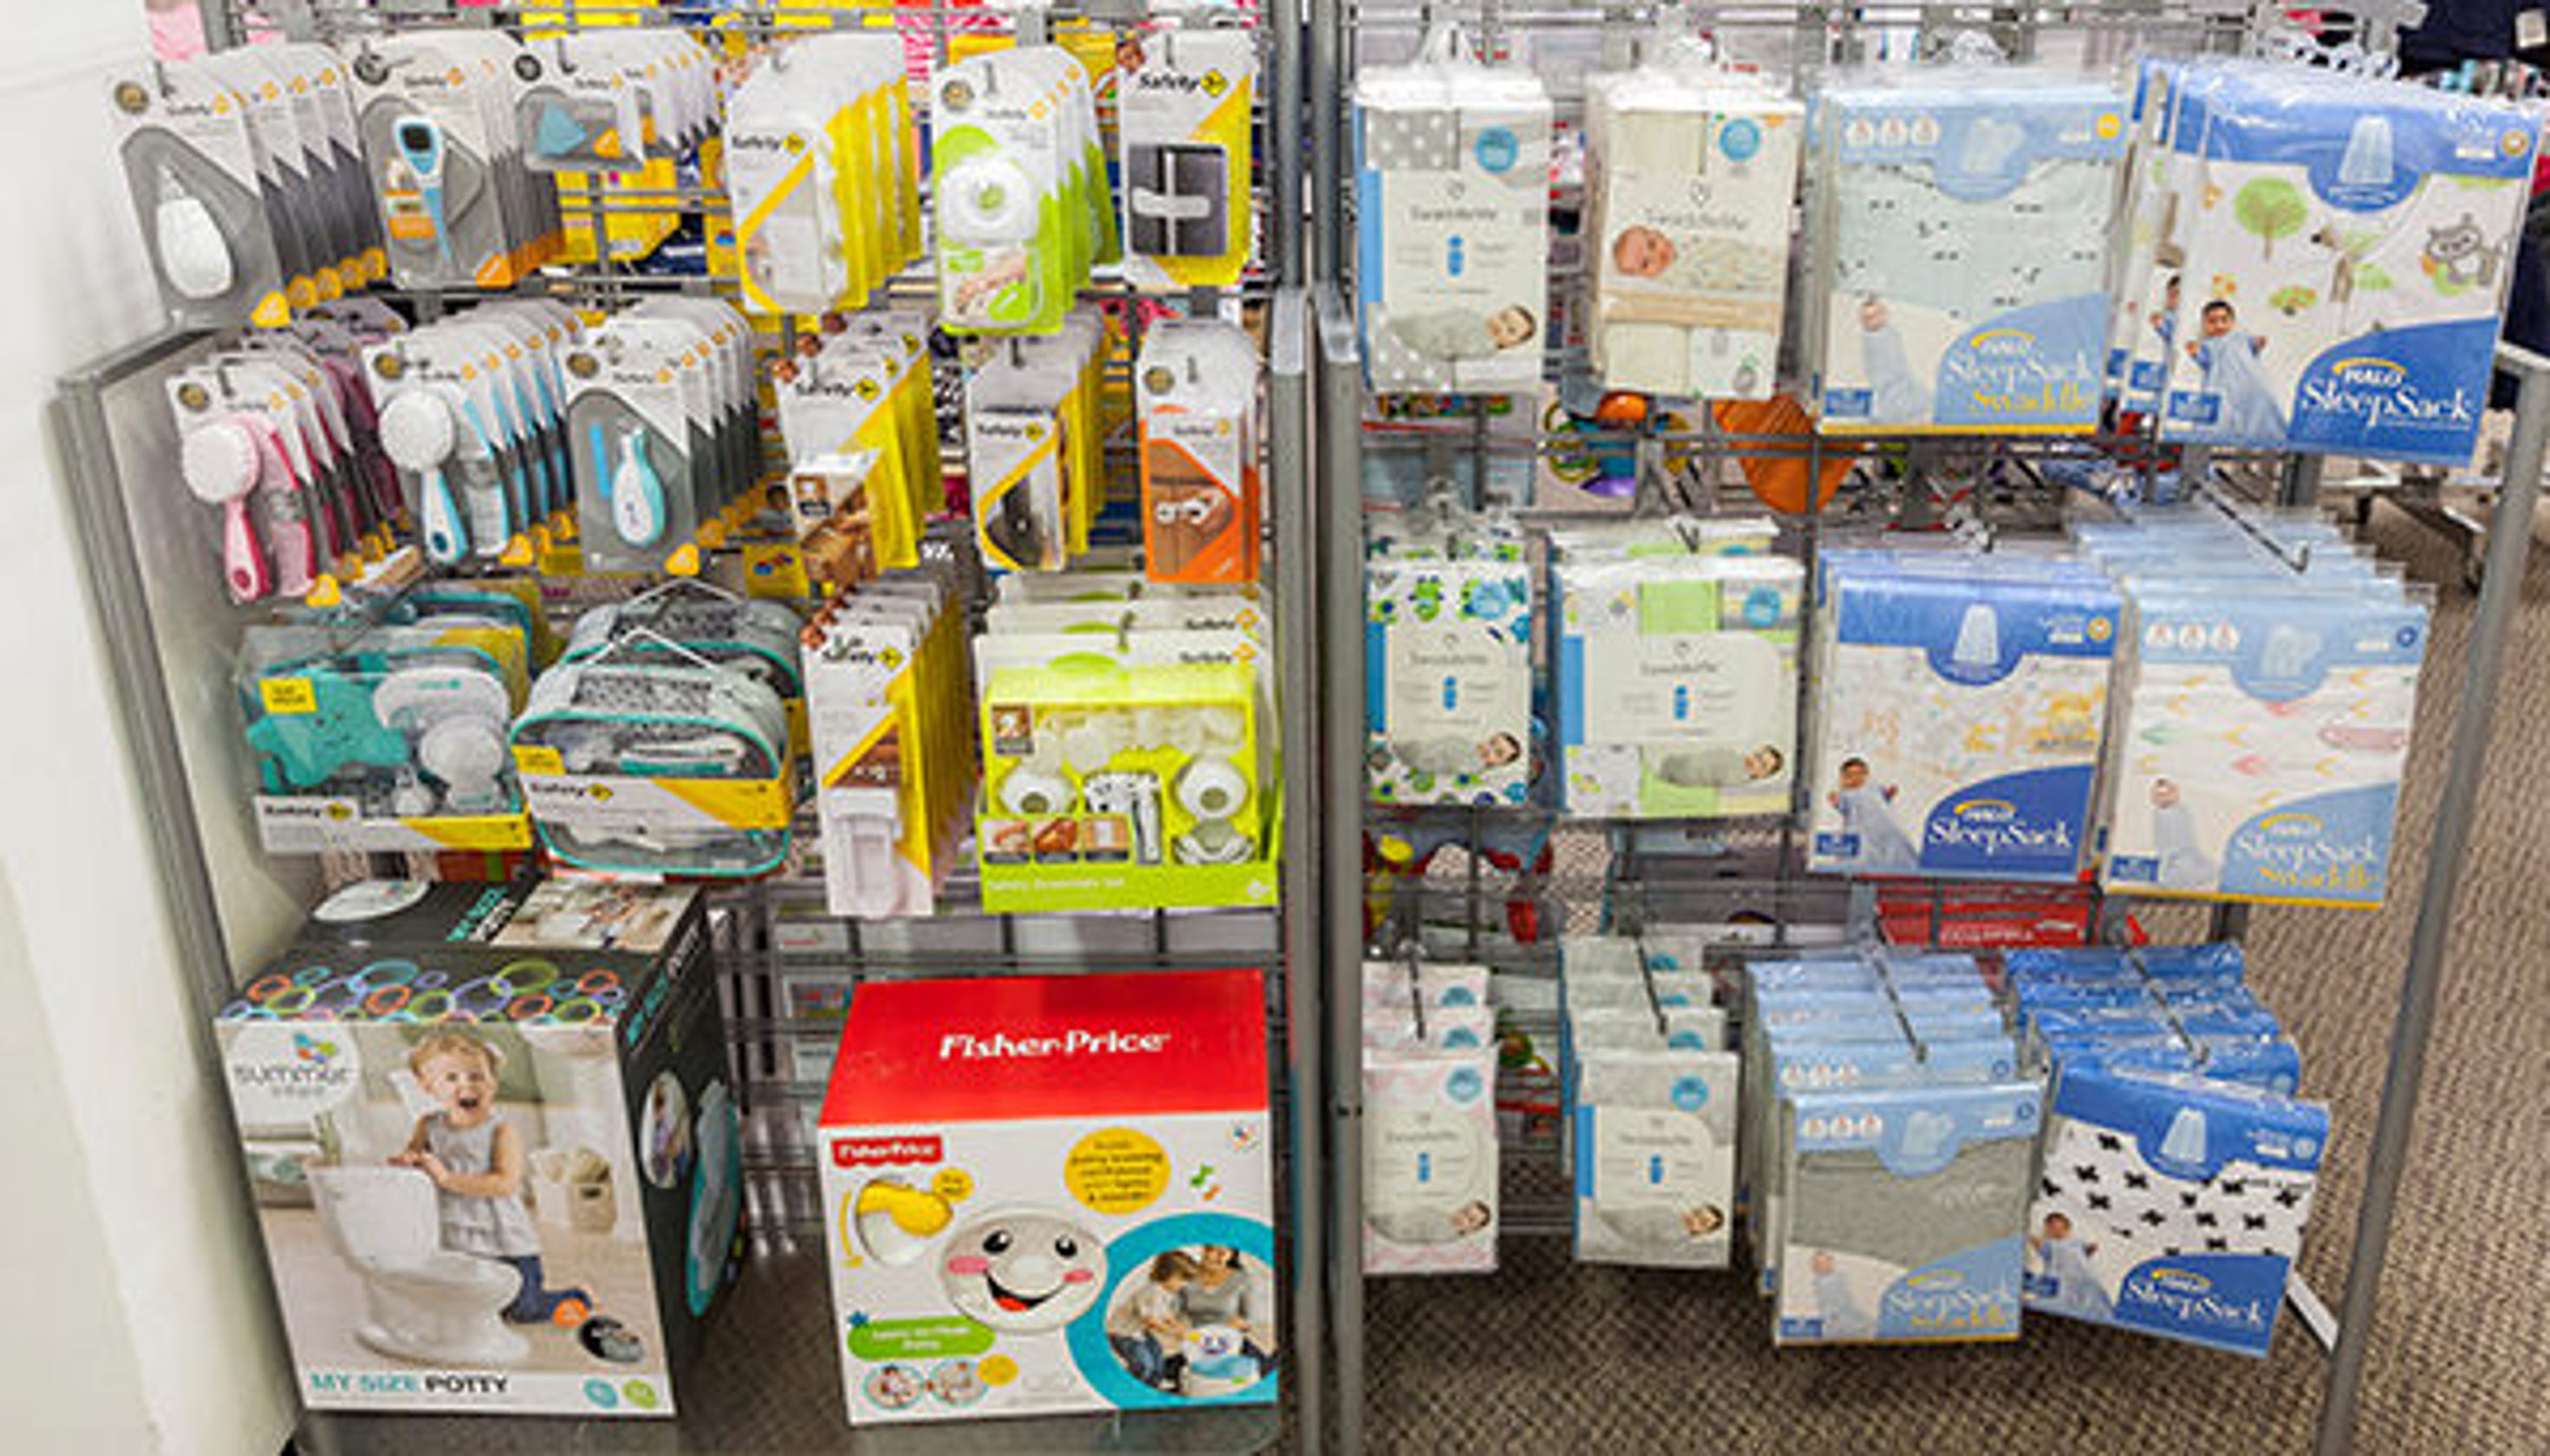 J c penney opens new baby shops in 500 stores to fill for Bb shop